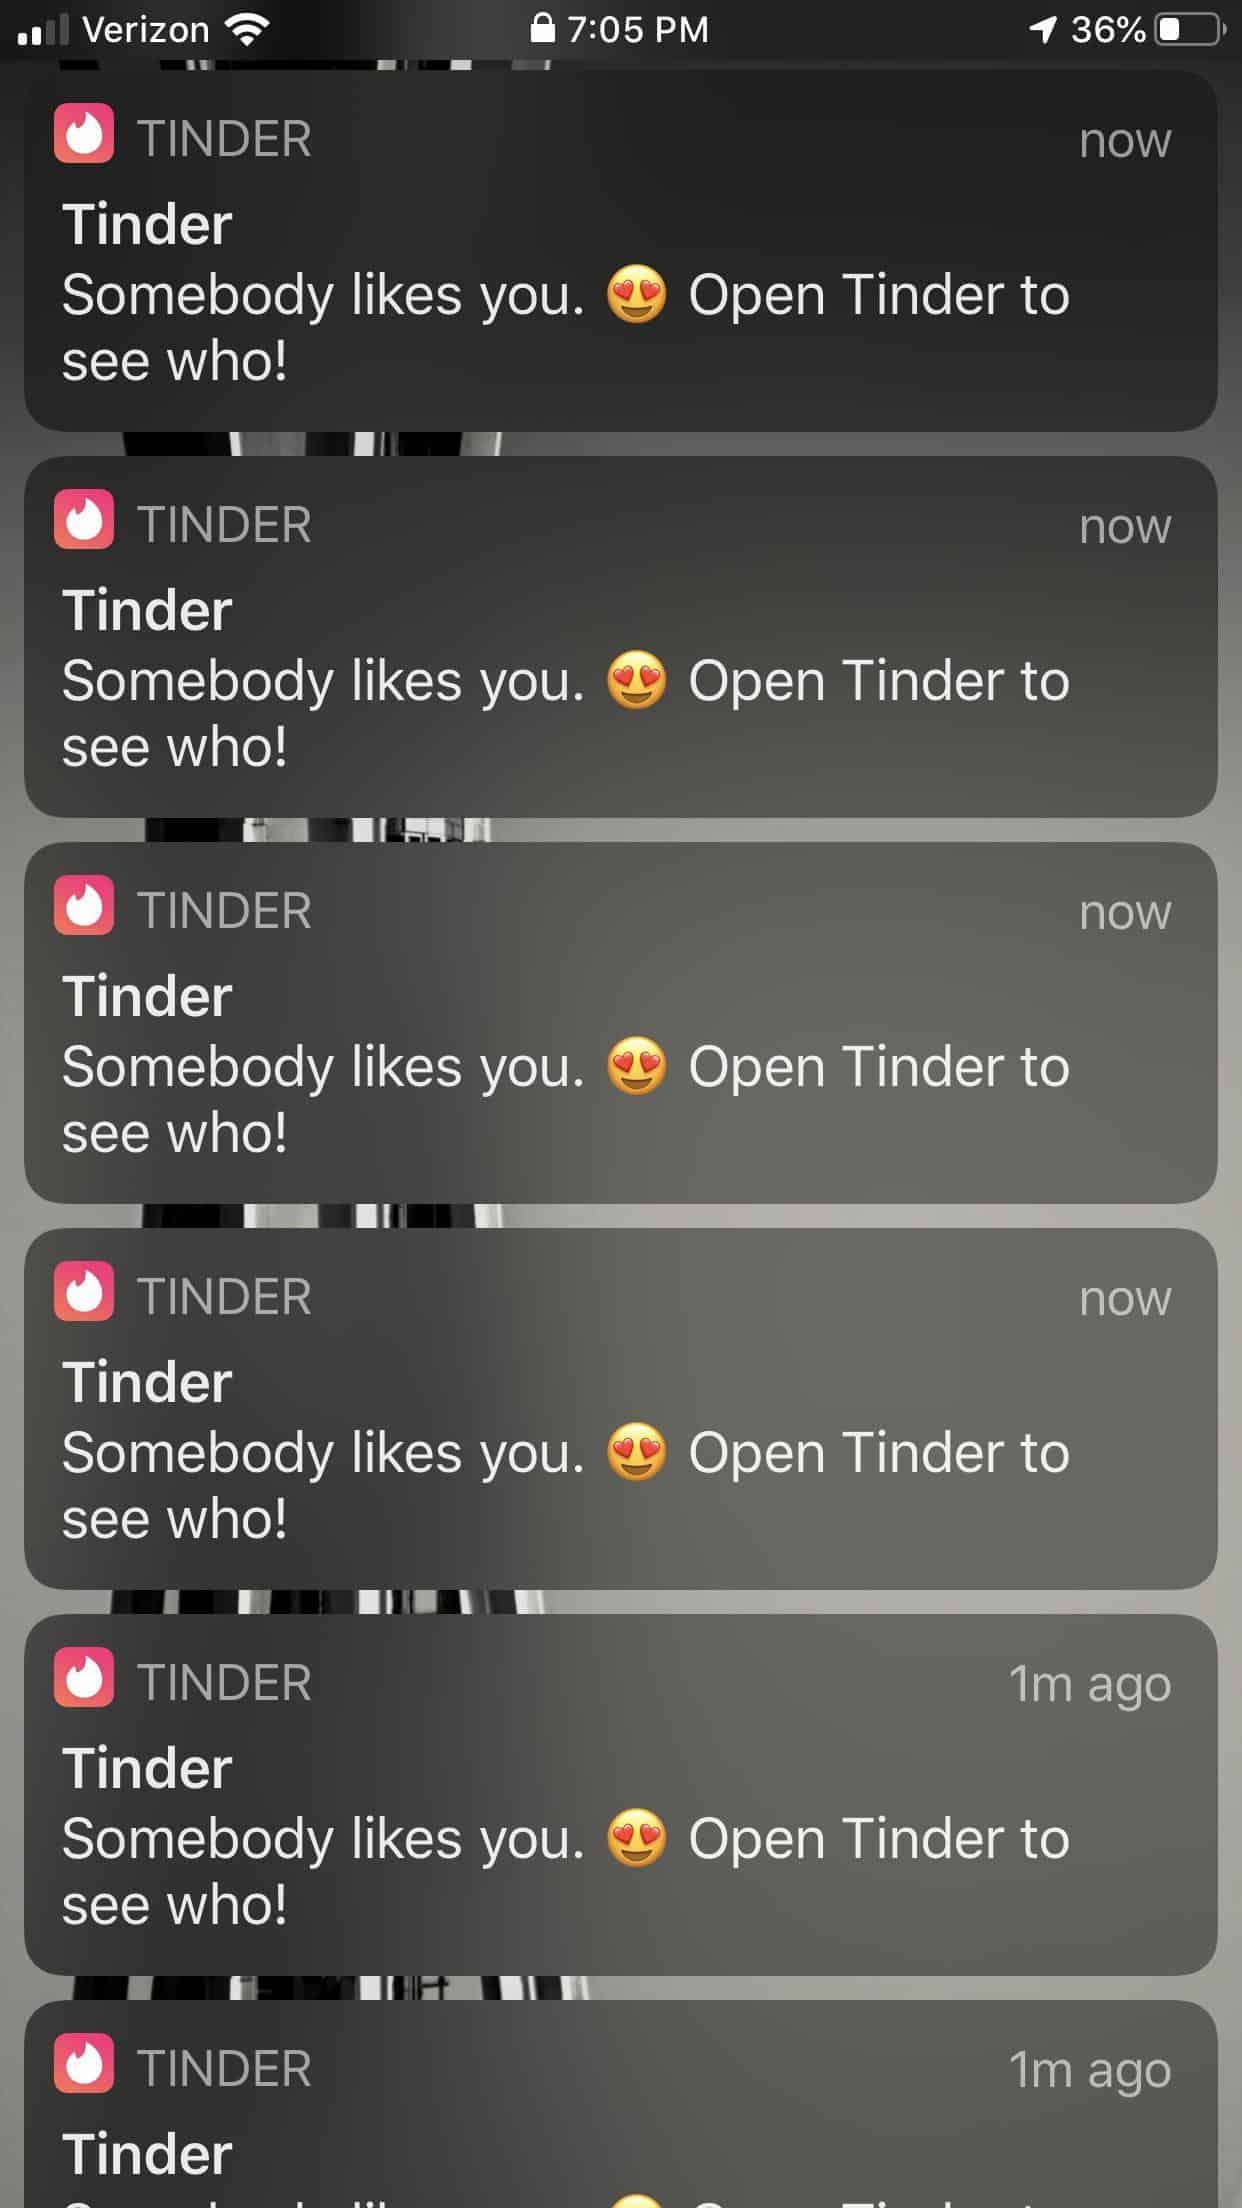 Tinder Openers - Somebody Likes you